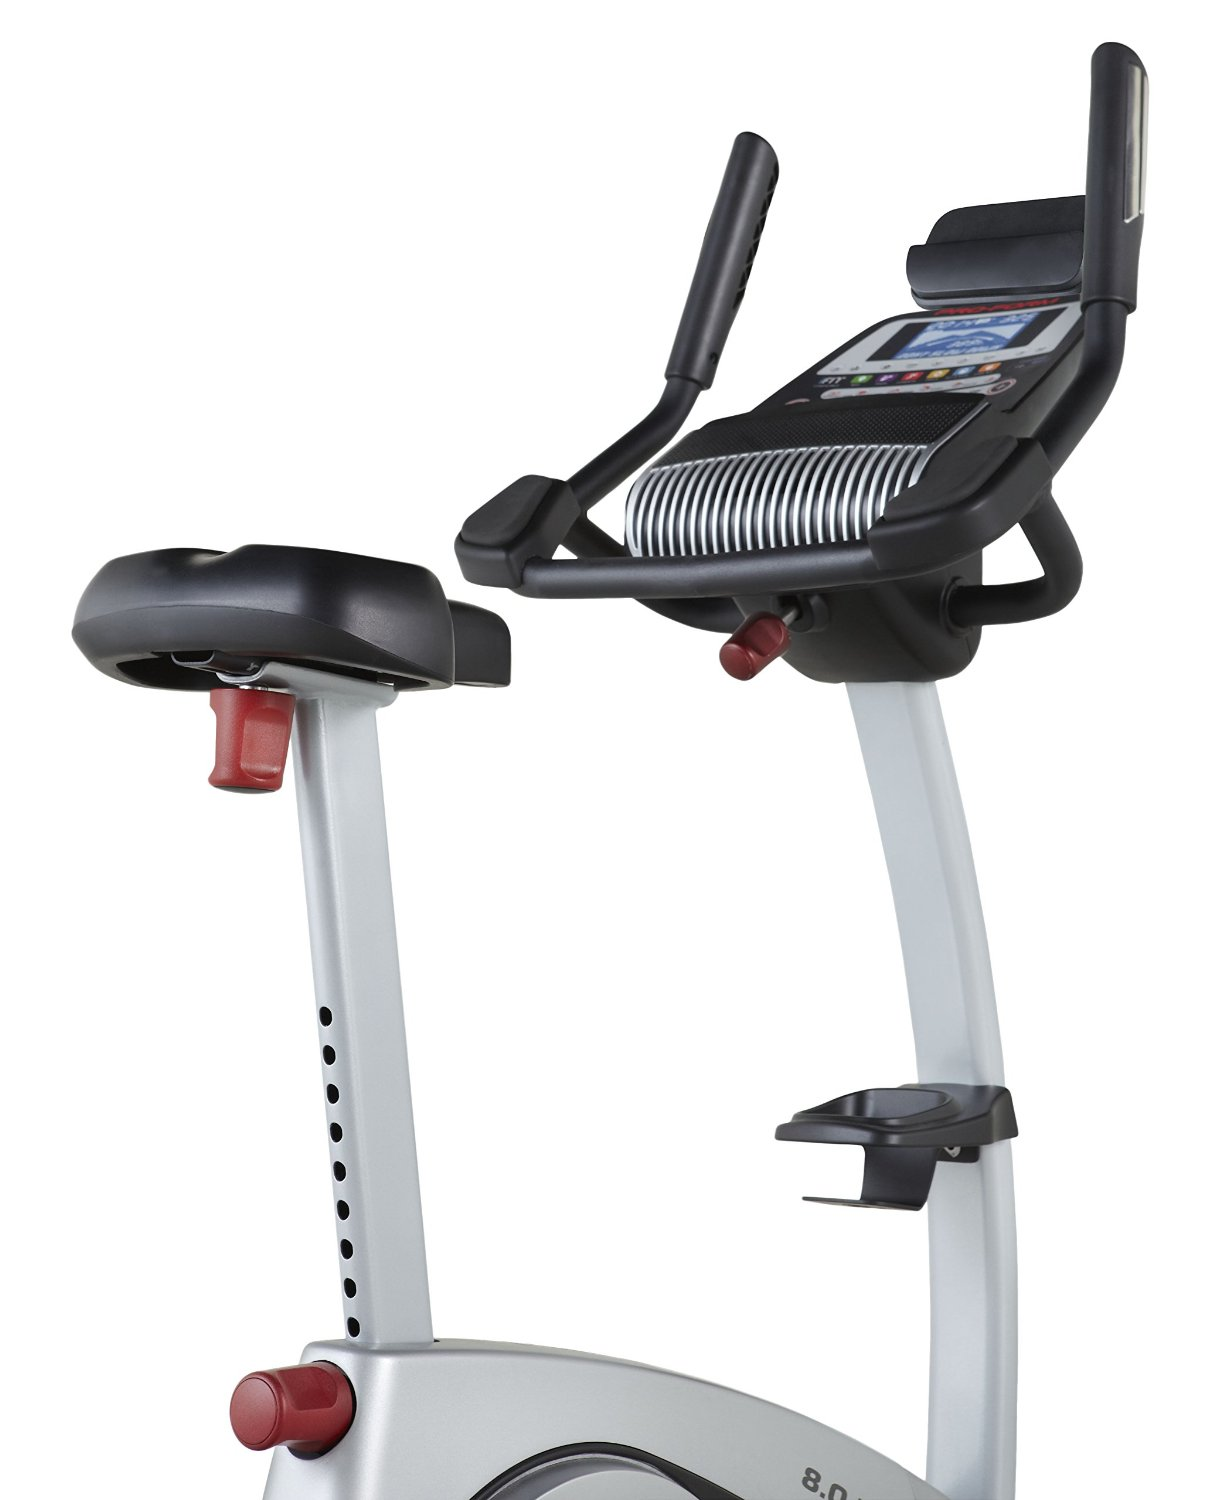 ProForm 8.0 EX Exercise Bike Review - Latest Fitness ...